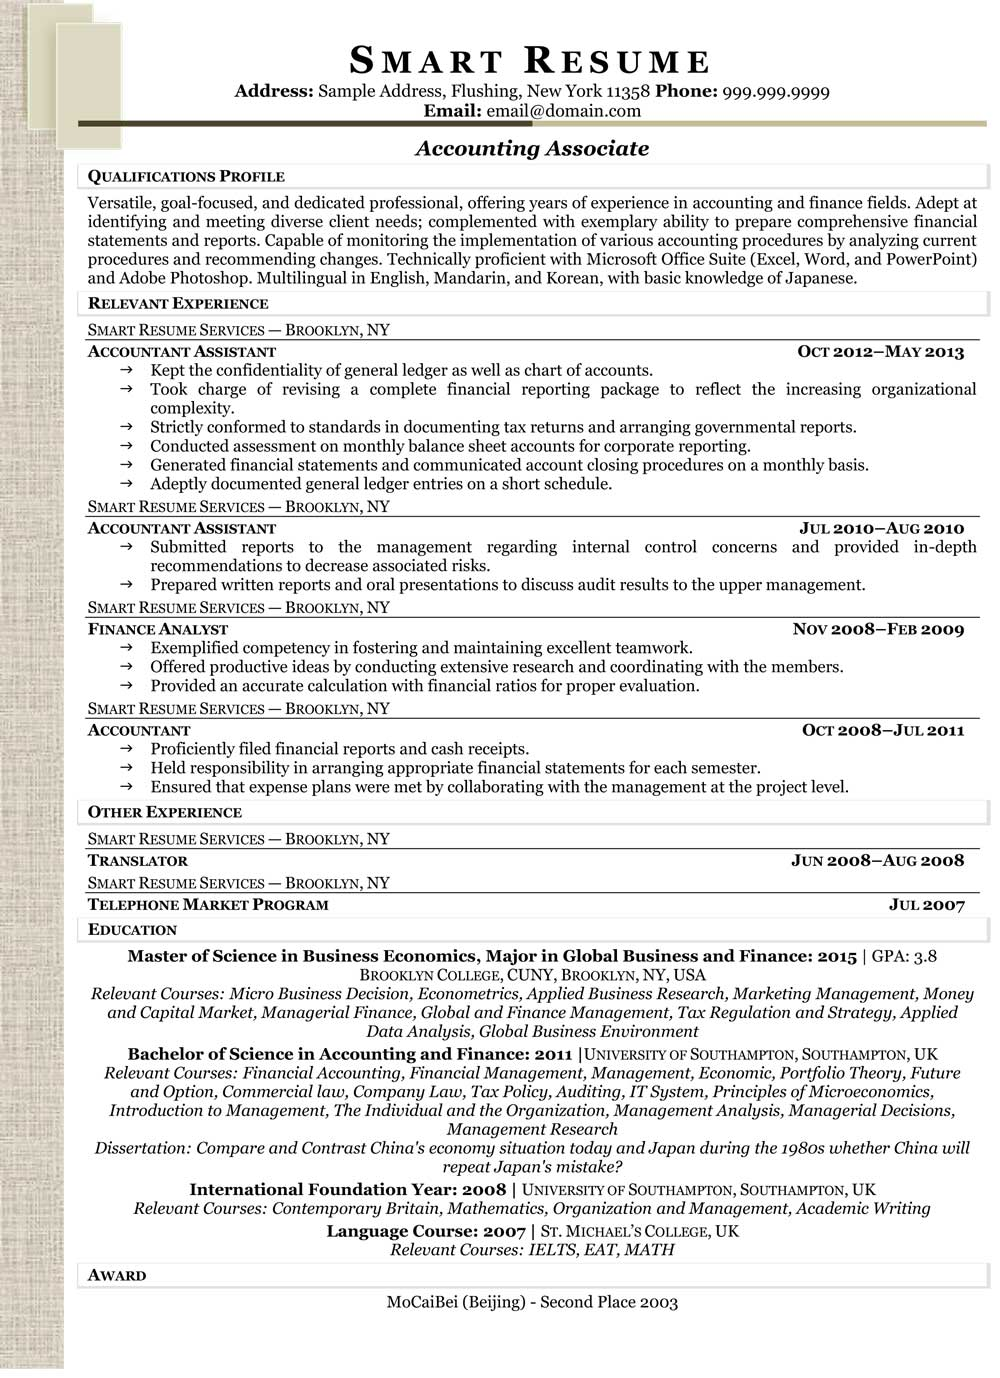 federal government resume examples resume samples accounting associate gpa resume samples accounting associate gpa sample - Sample Of Government Resume